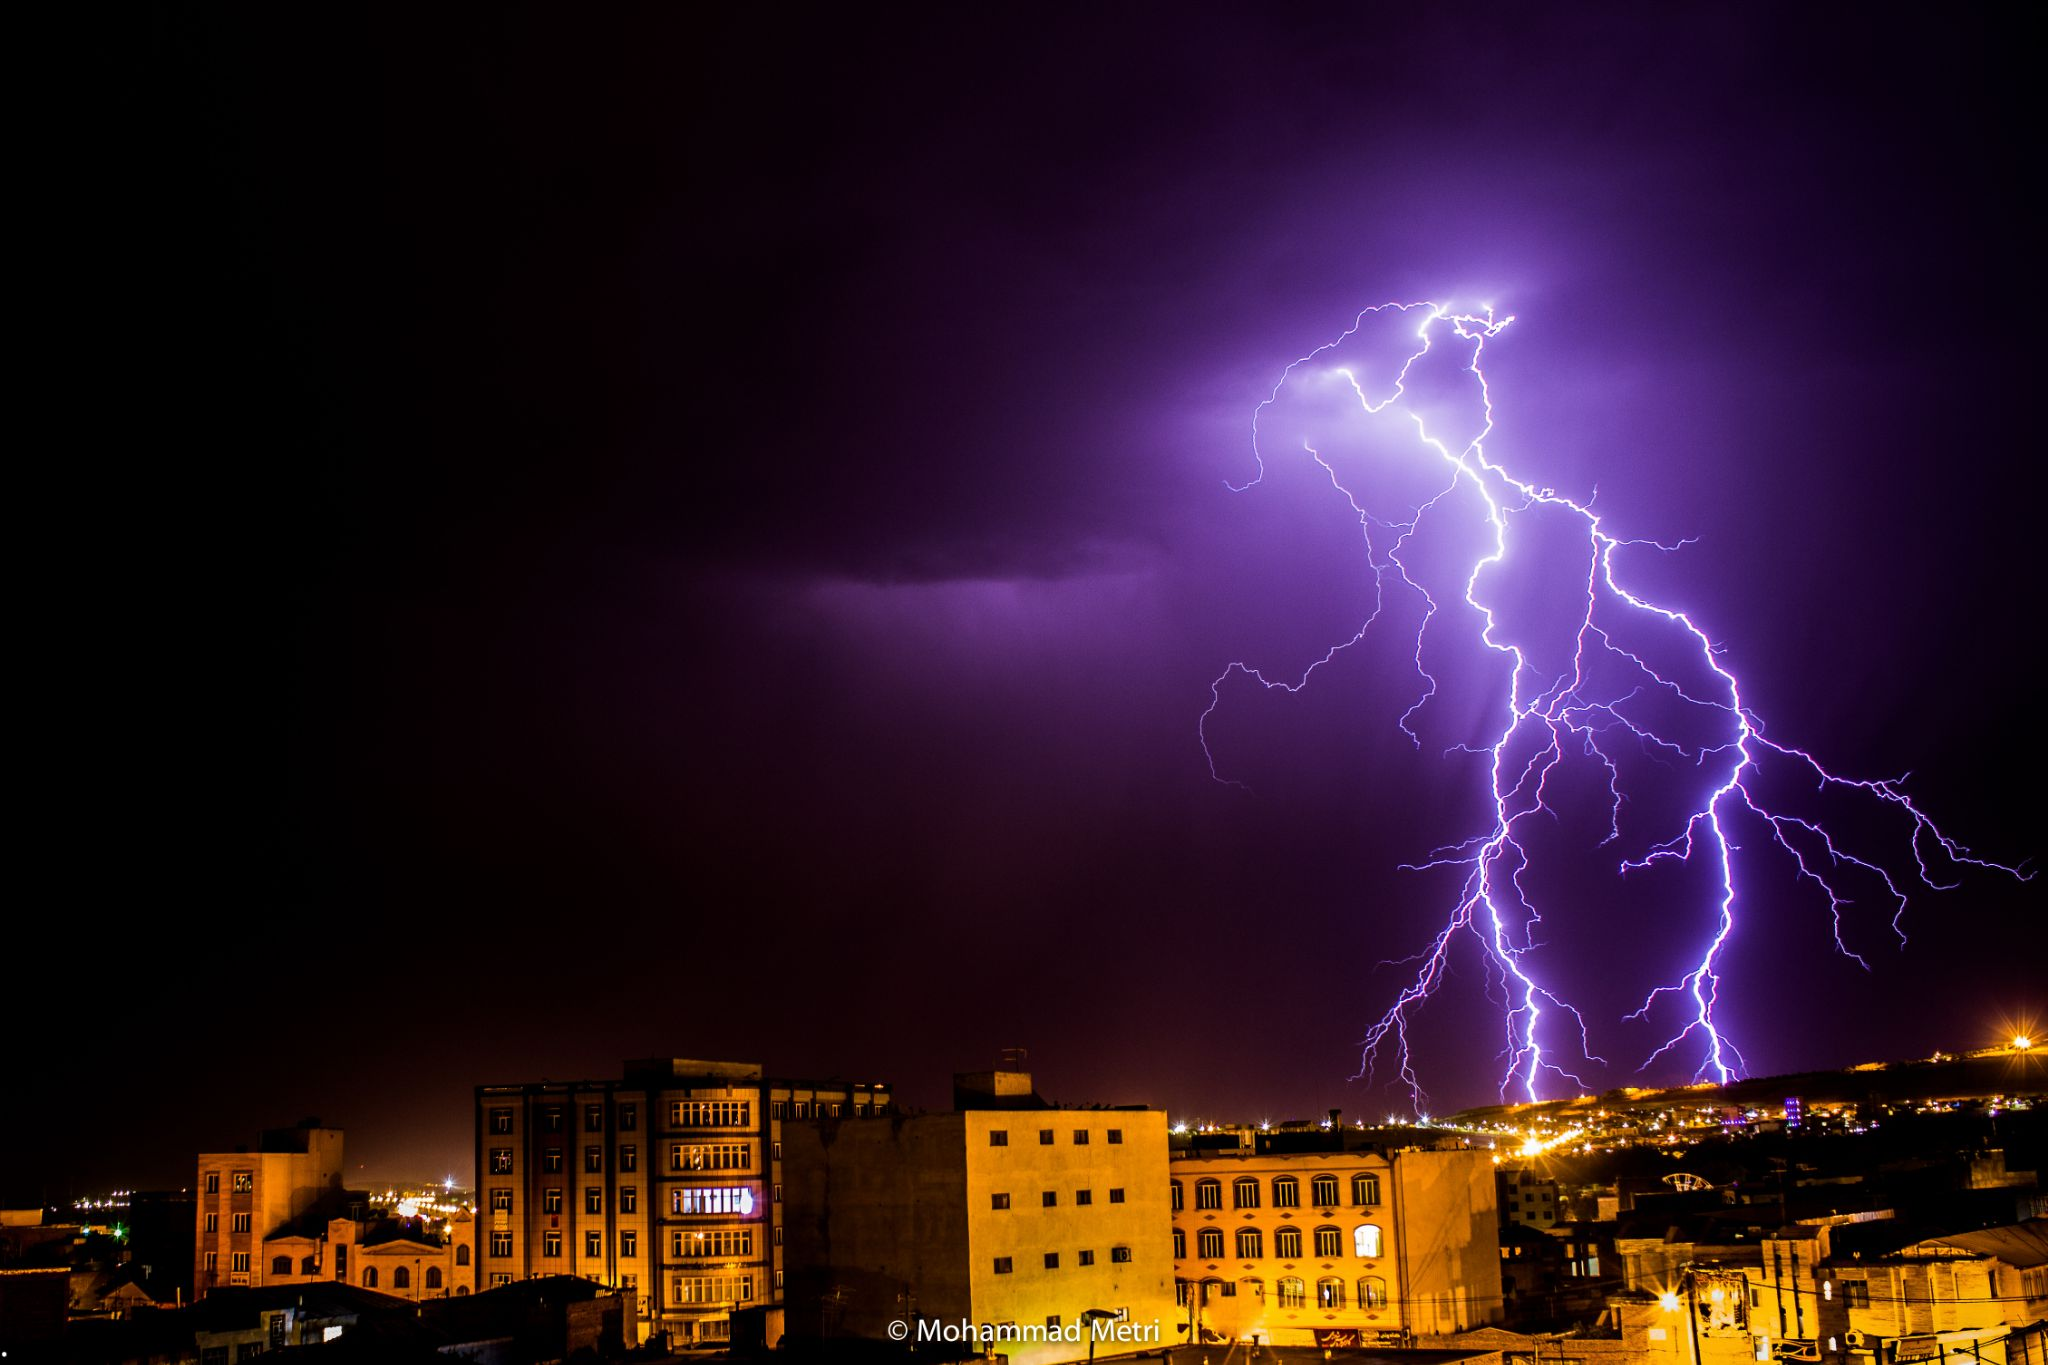 City on the fence lightning by mohammad.metri